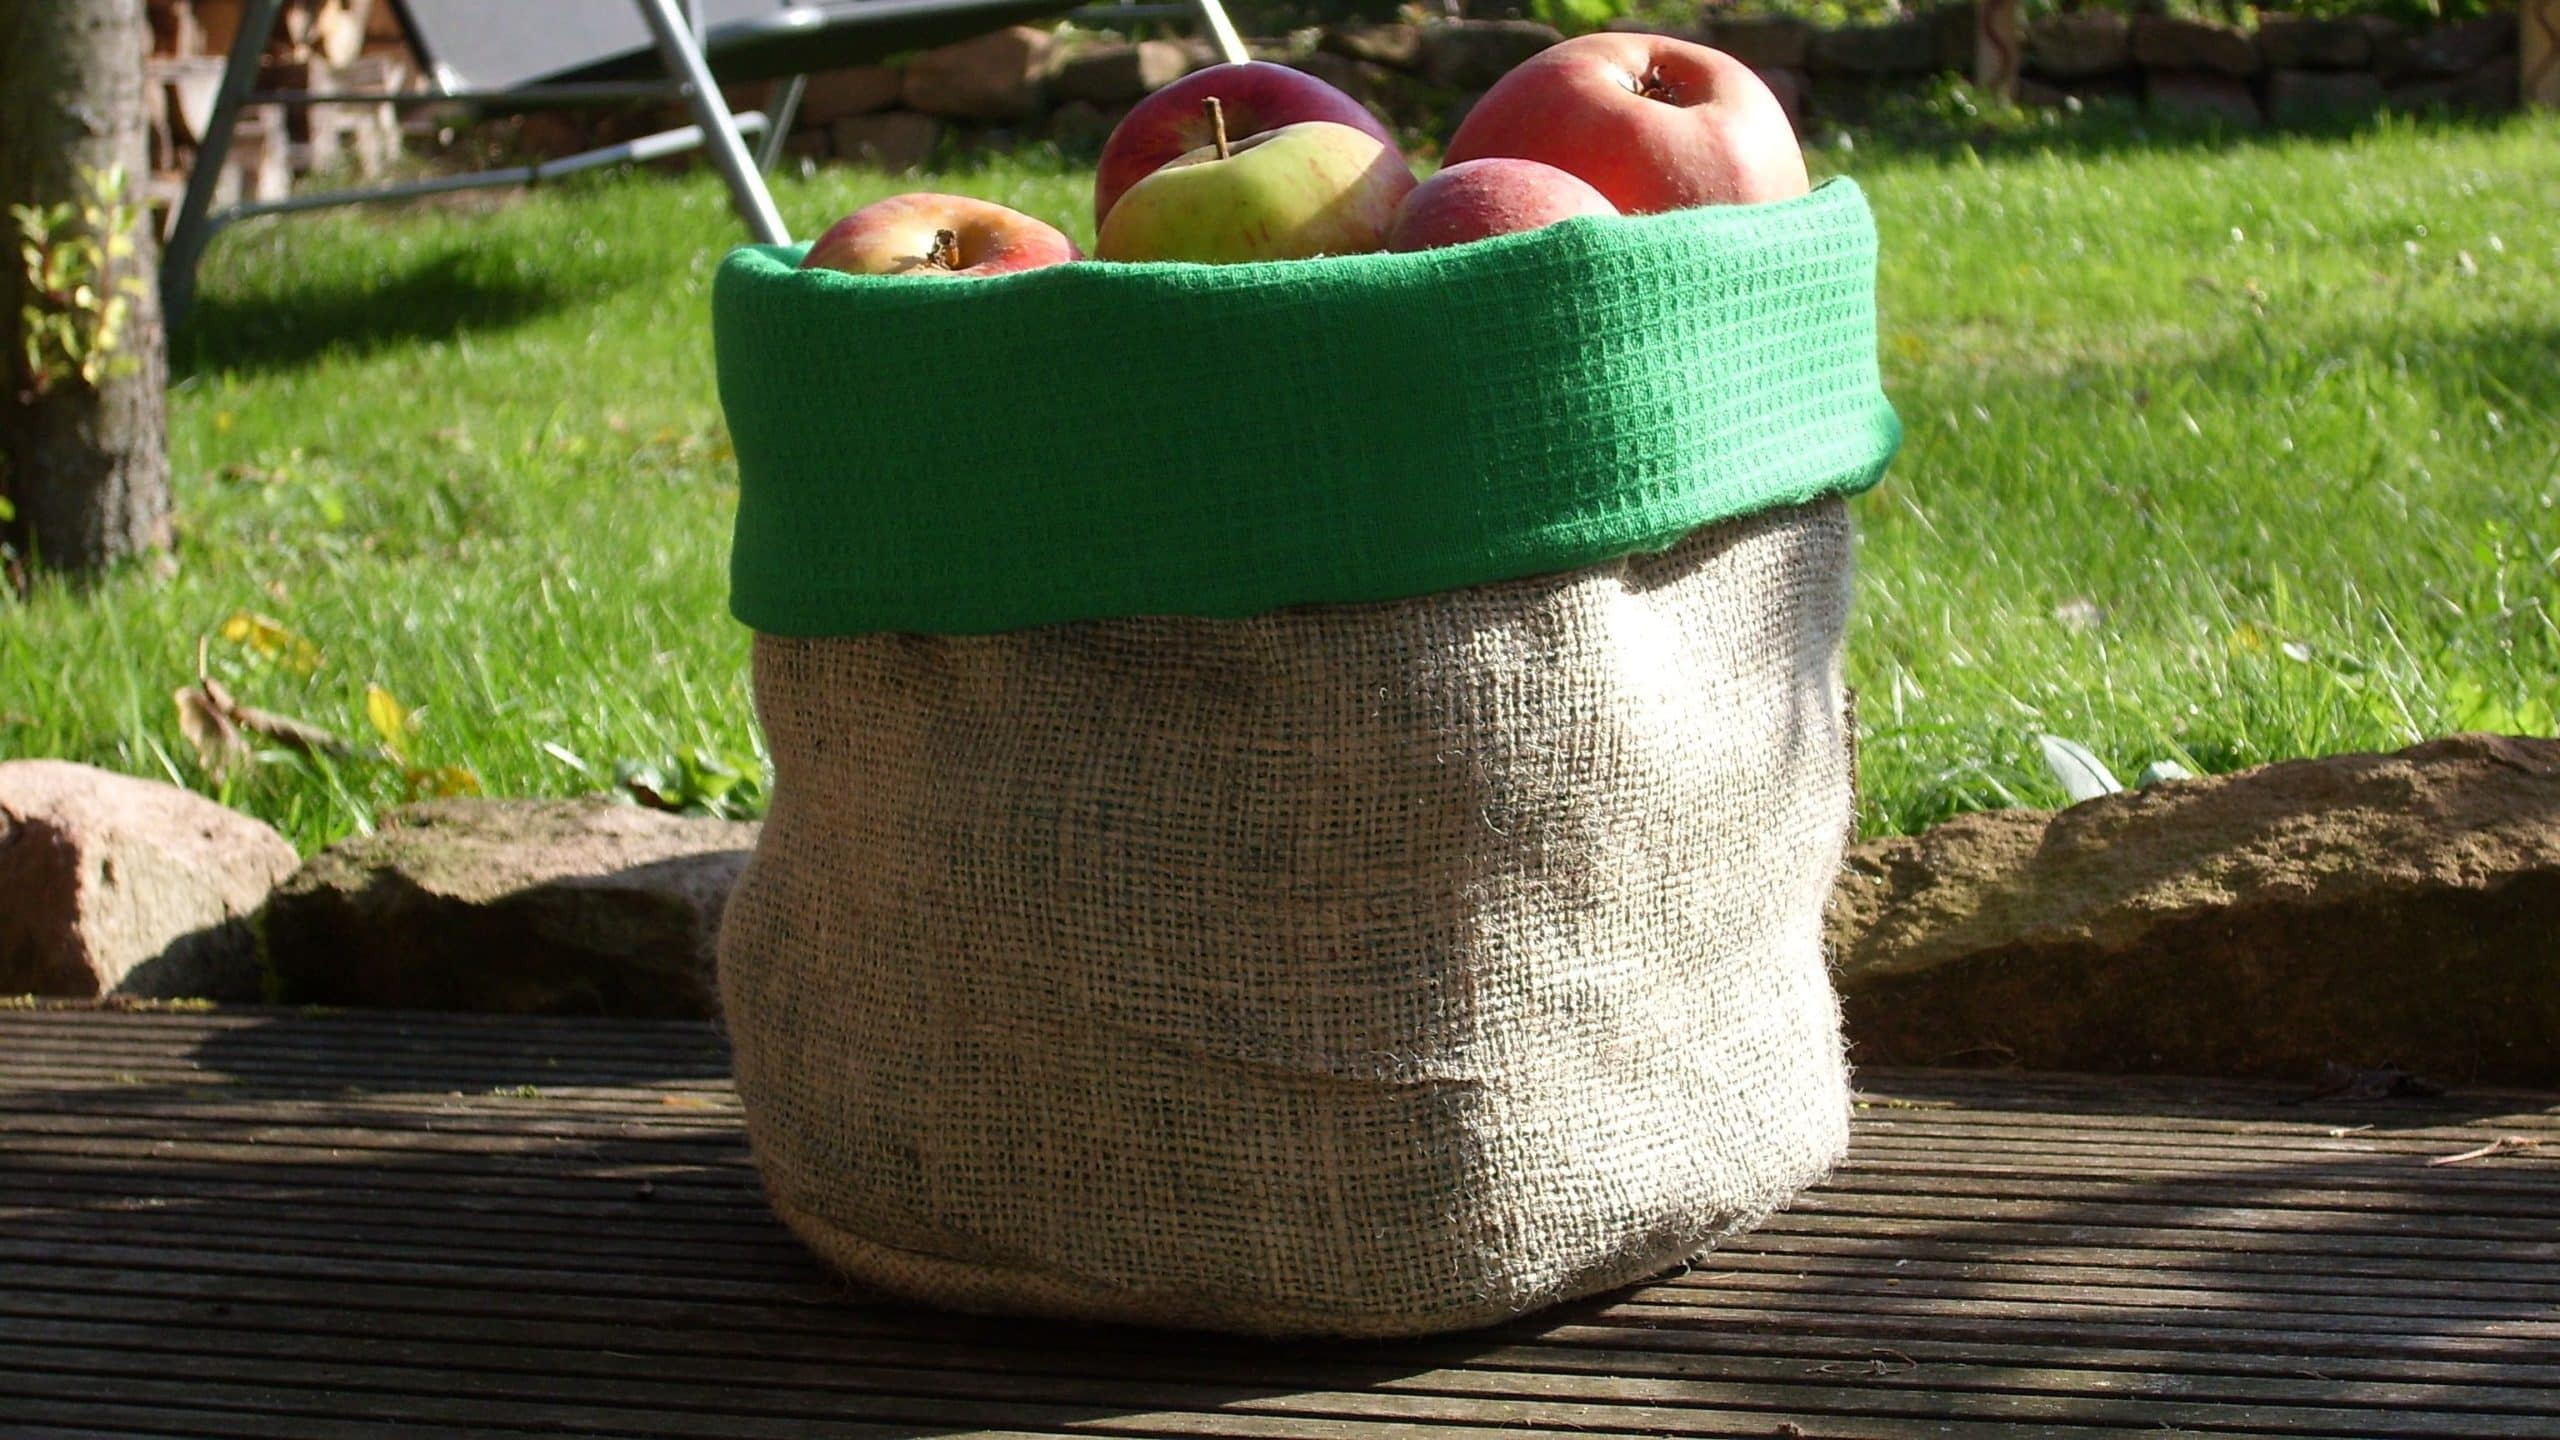 jute bag filled with apples